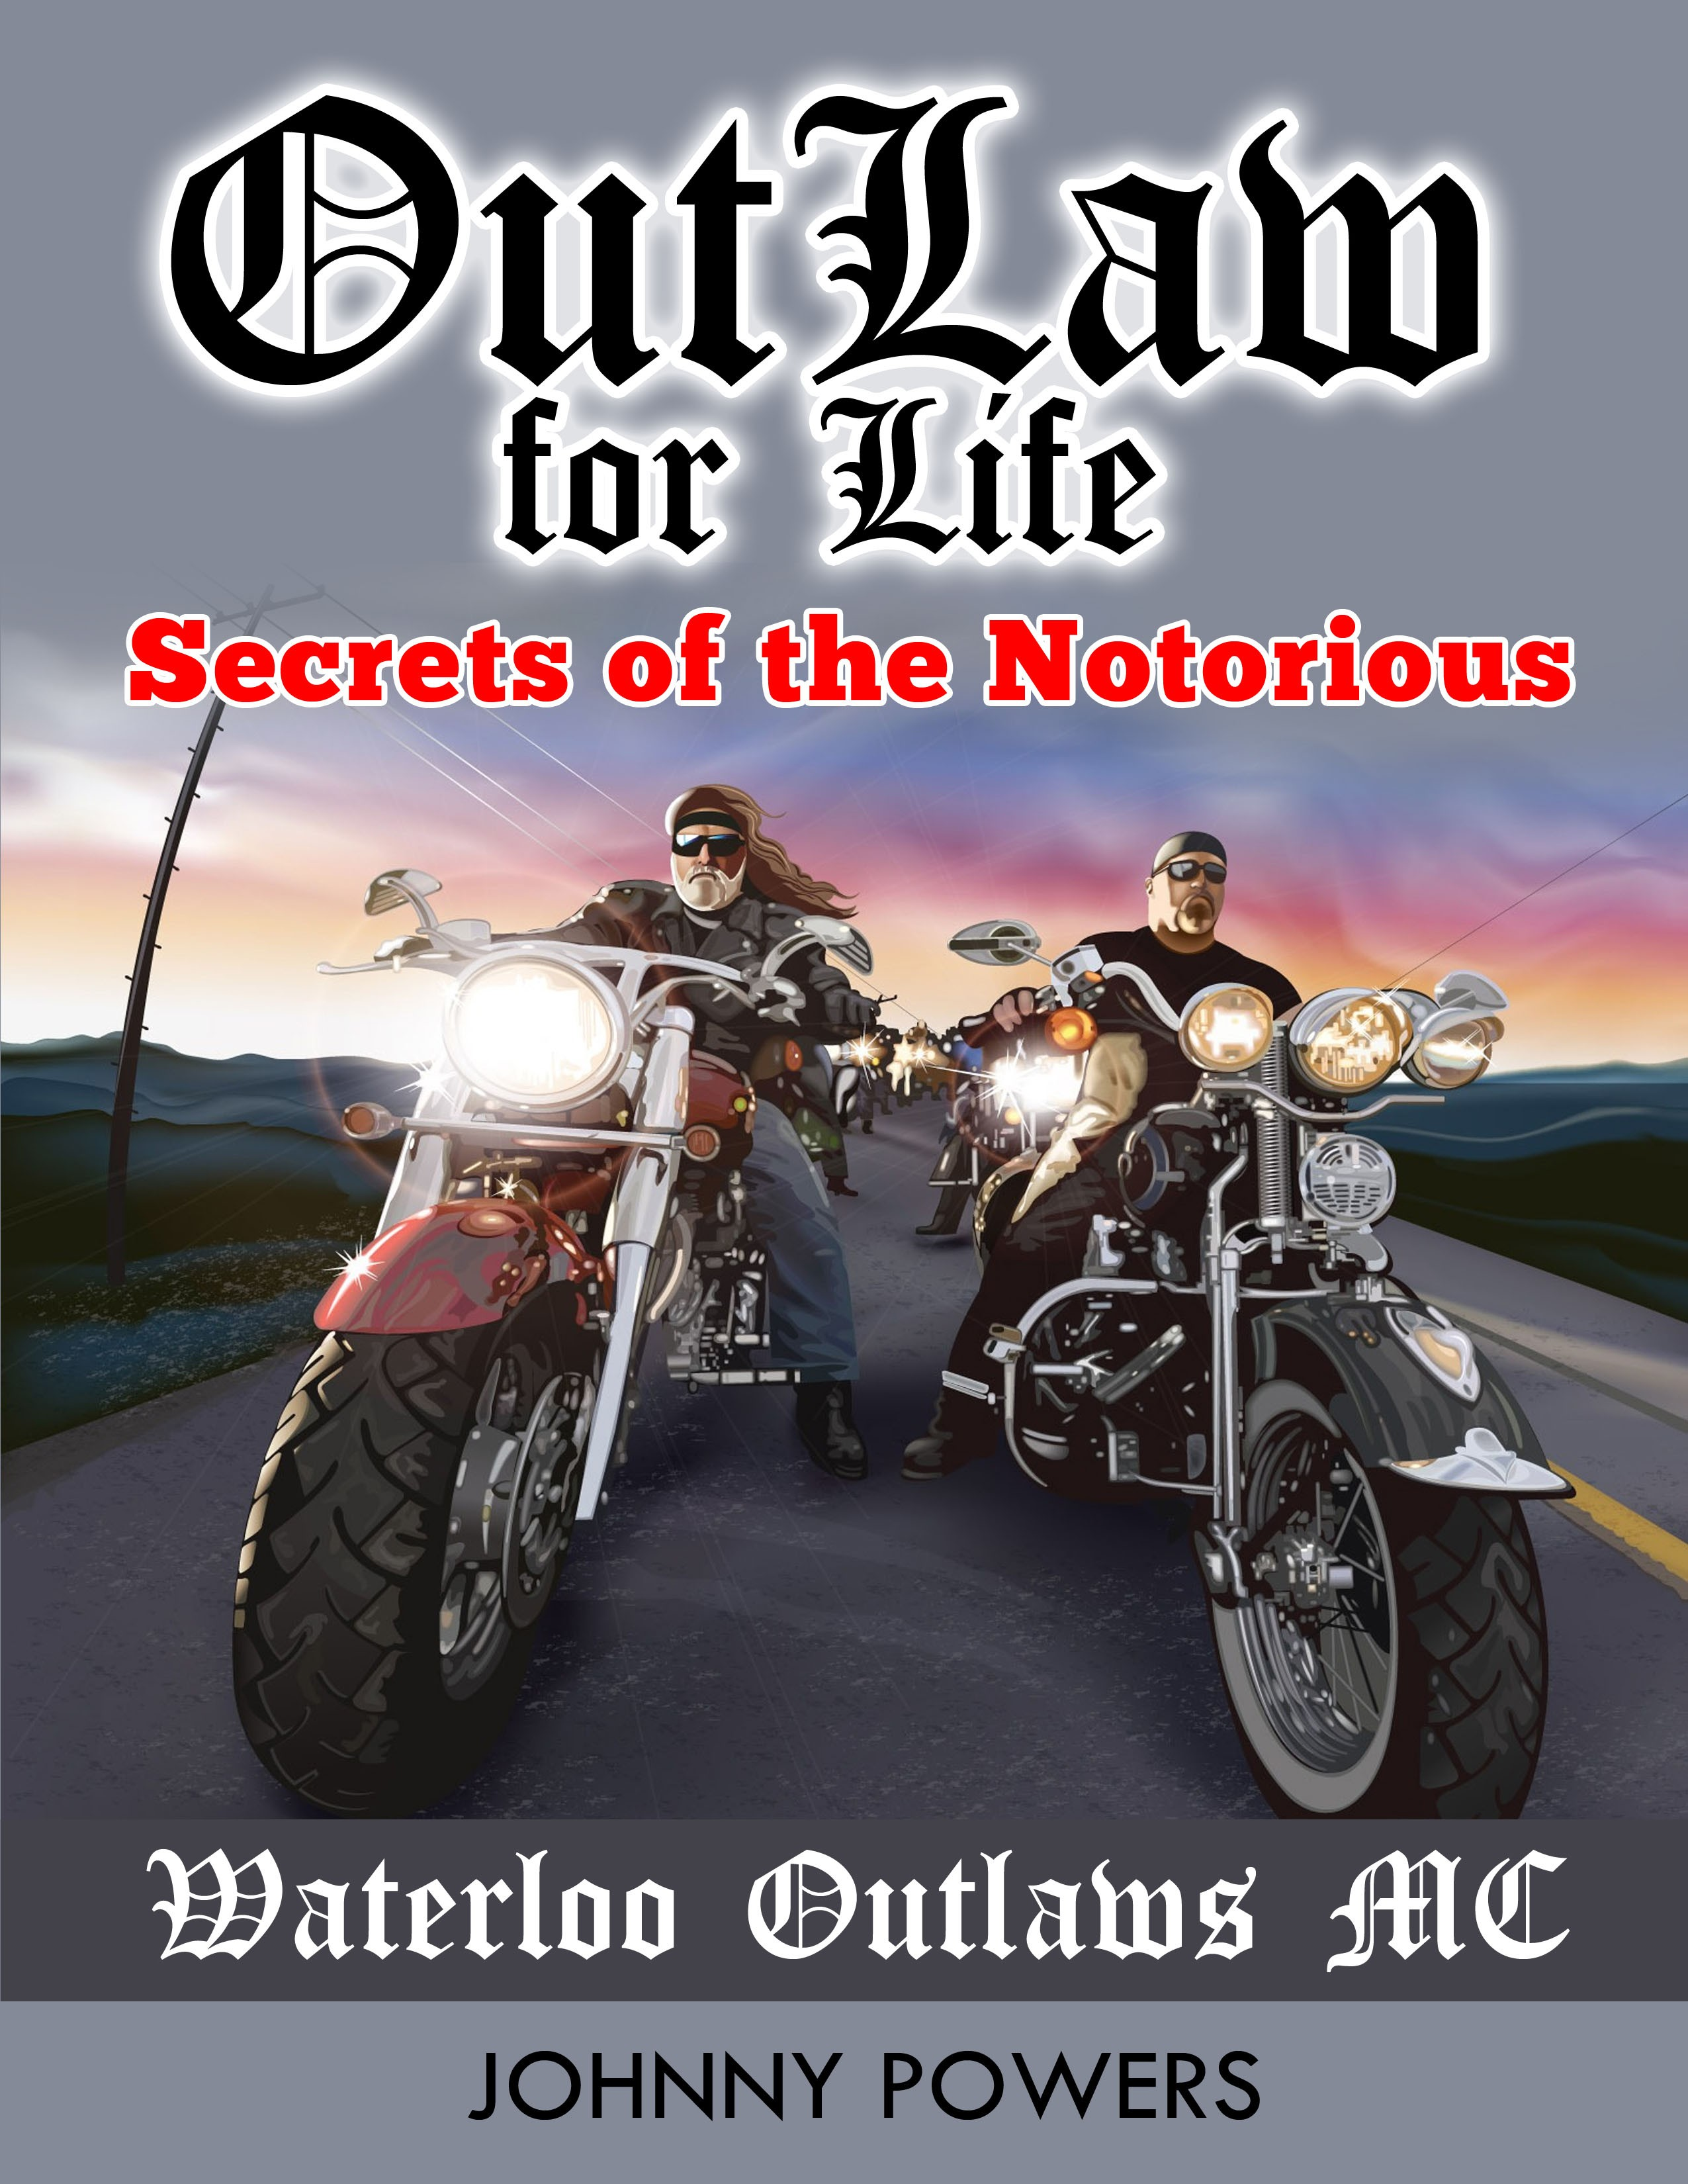 Outlaw for Life! - Secrets of the Notorious Waterloo Outlaws MC, an Ebook  by Johnny Powers